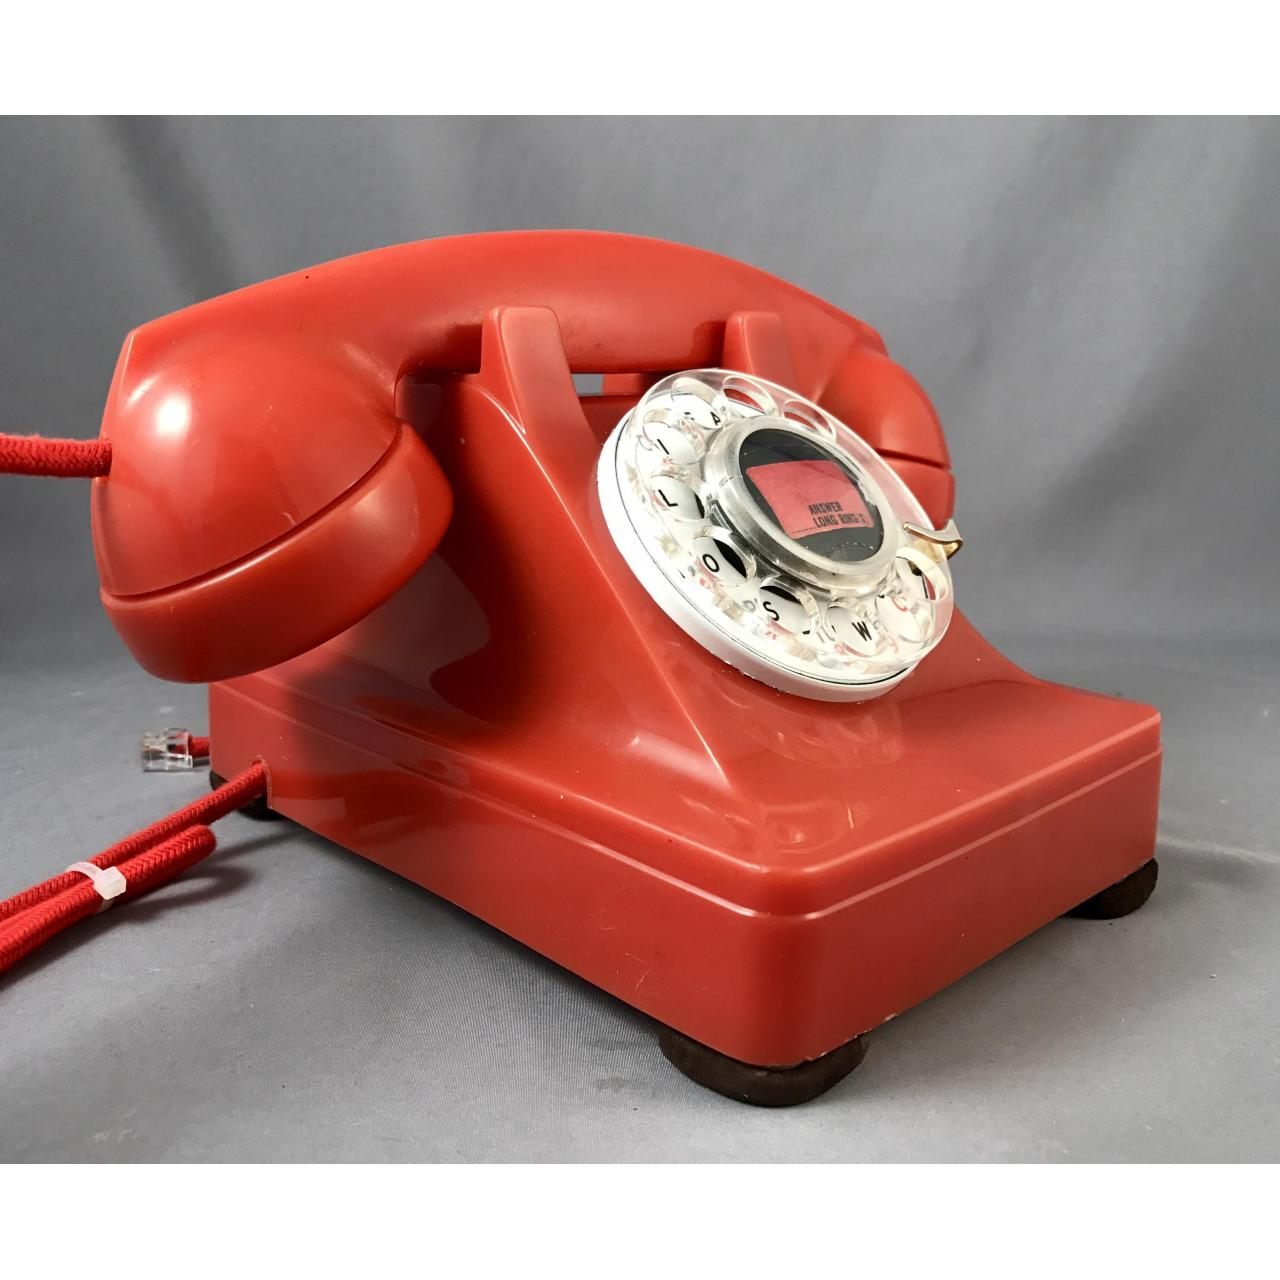 Best 302 - Red - Fully Refurbished Antique Phones wholesale